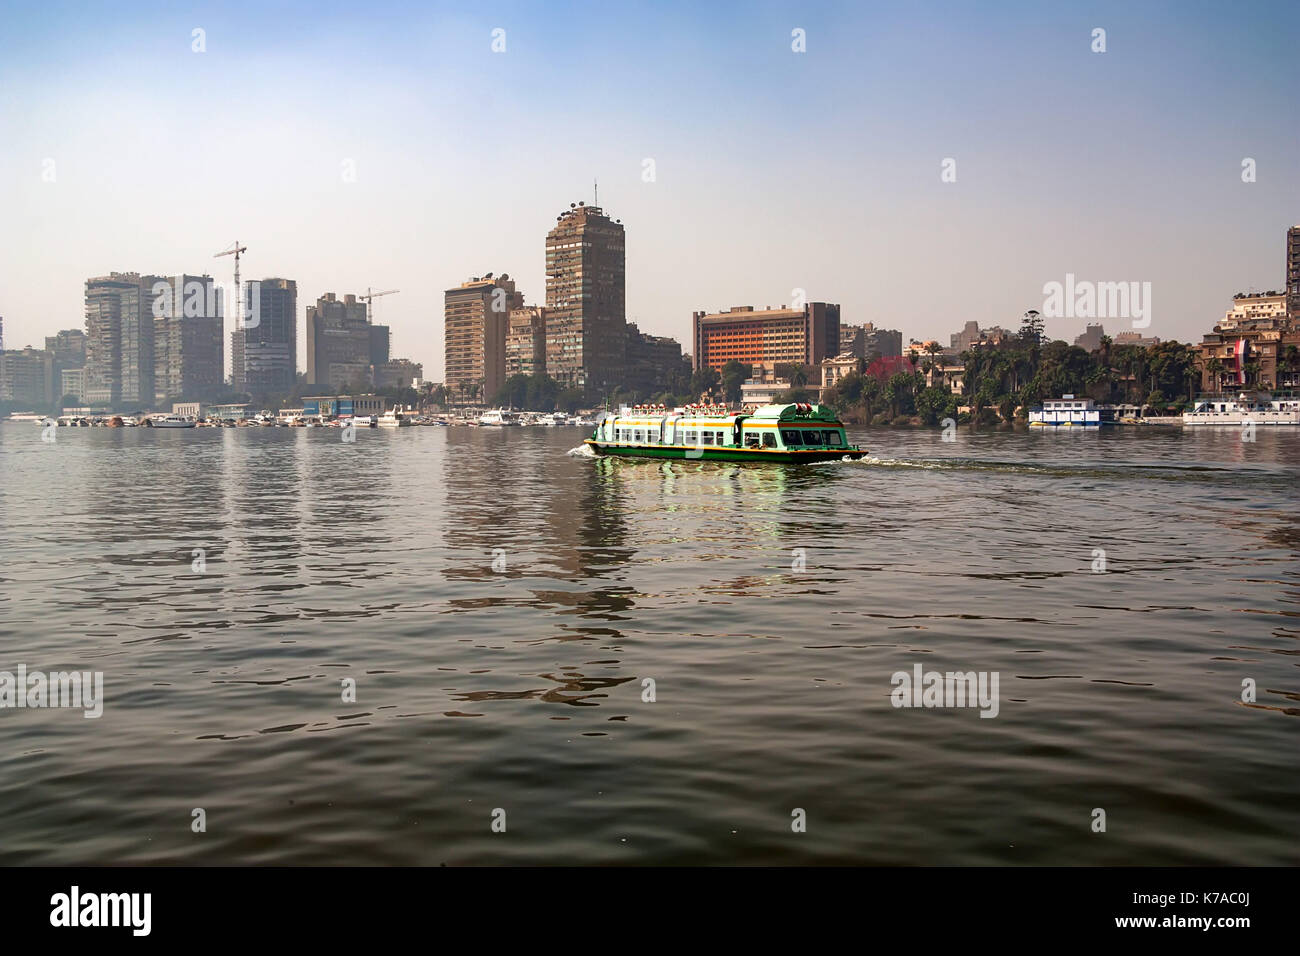 CAIRO, EGYPT - MARCH, 2010: VIEW FROM NILE - Stock Image